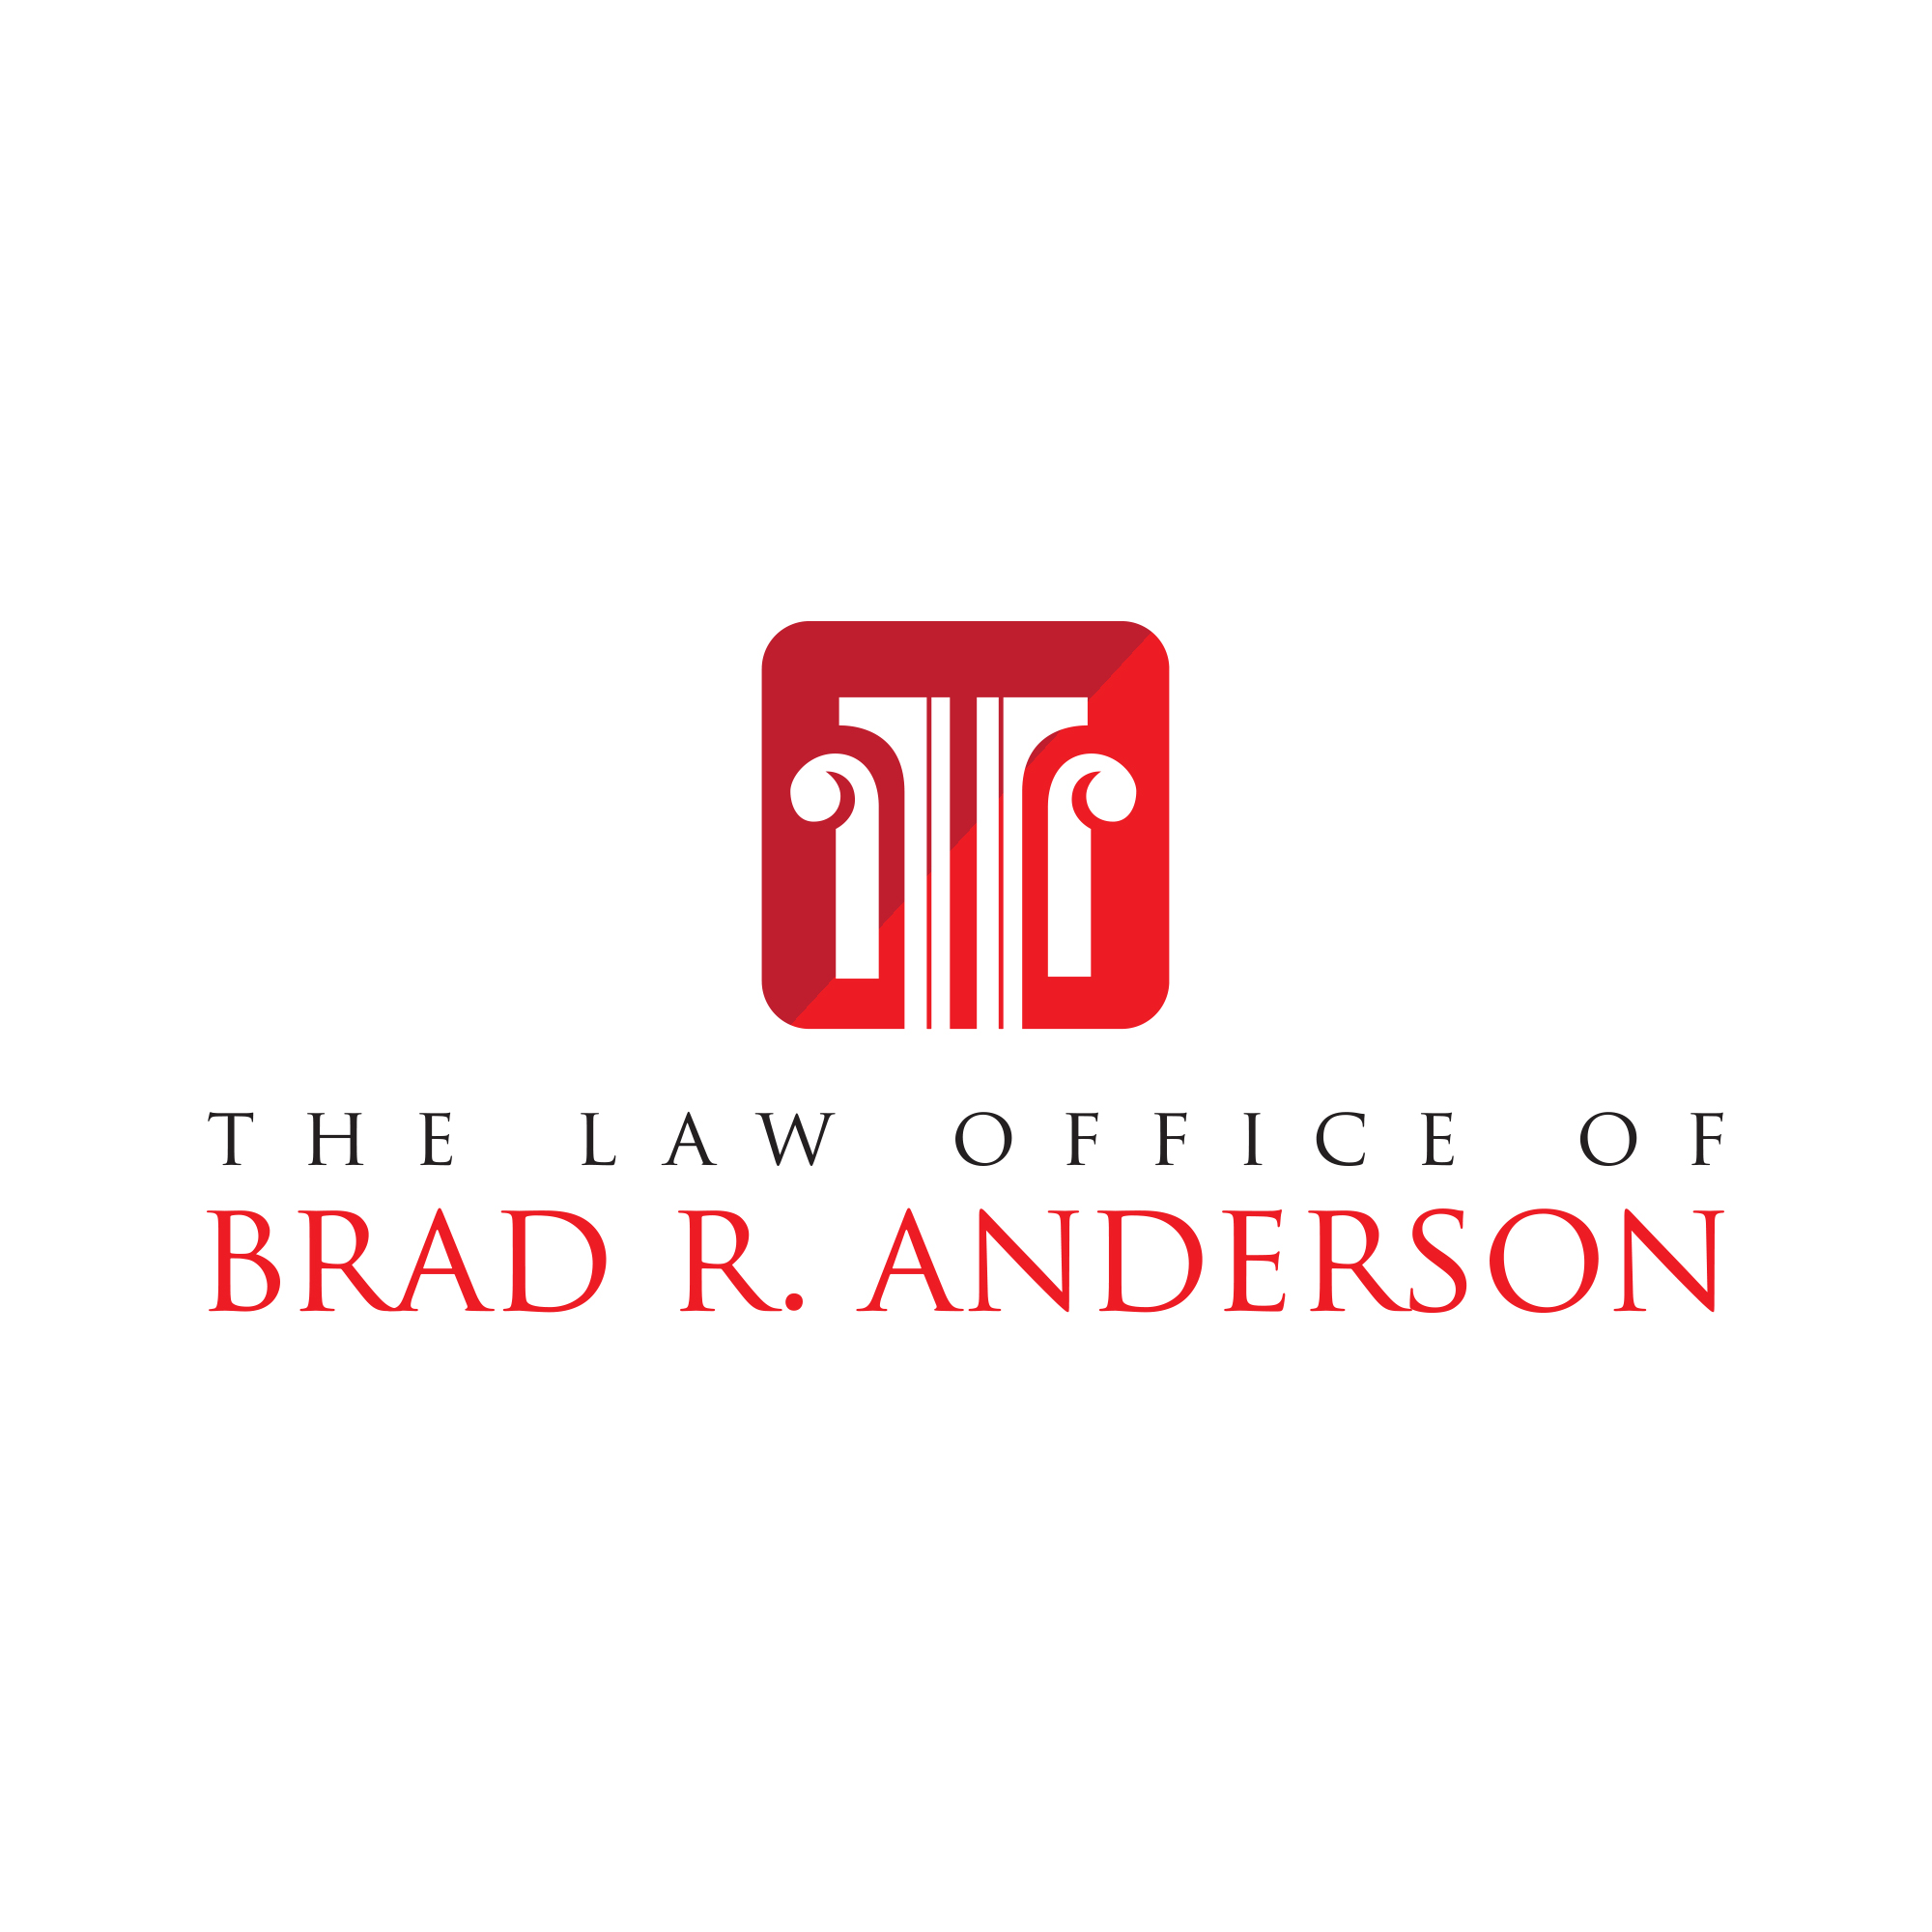 The Law Office Of Brad R. Anderson Profile Picture